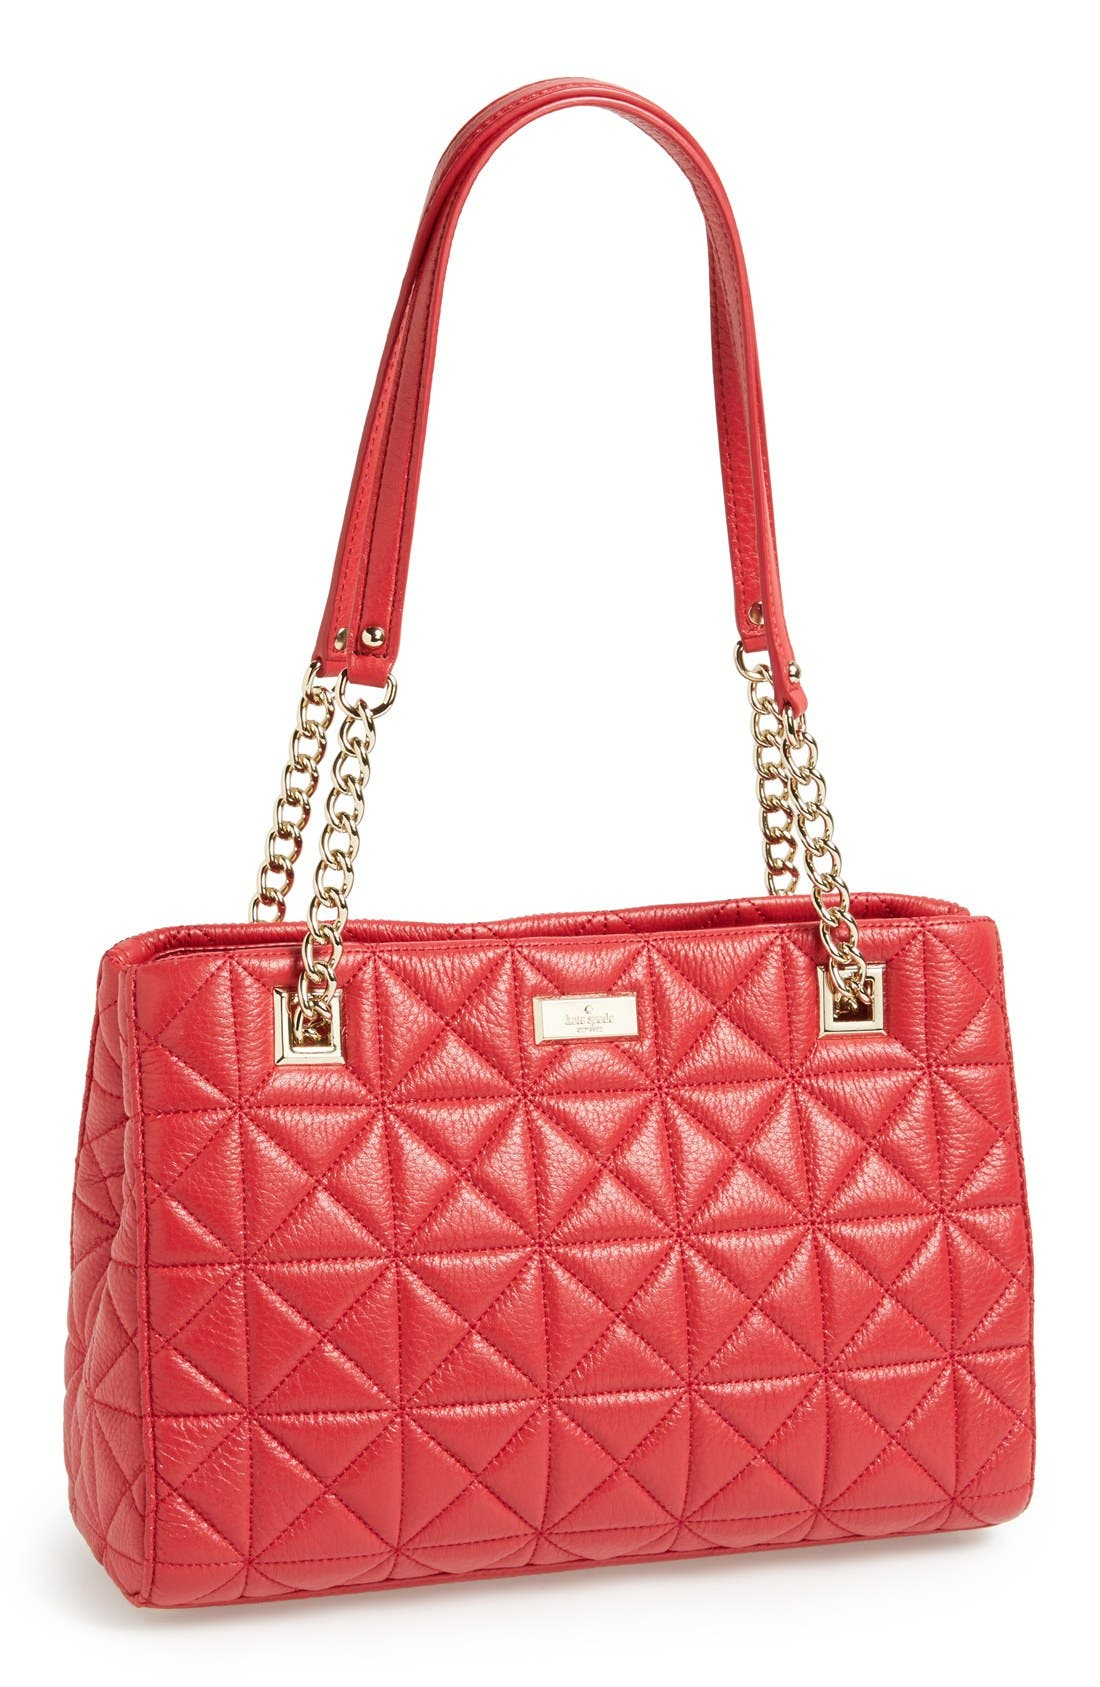 Main Image - kate spade new york 'sedgewick place - small phoebe' shoulder bag